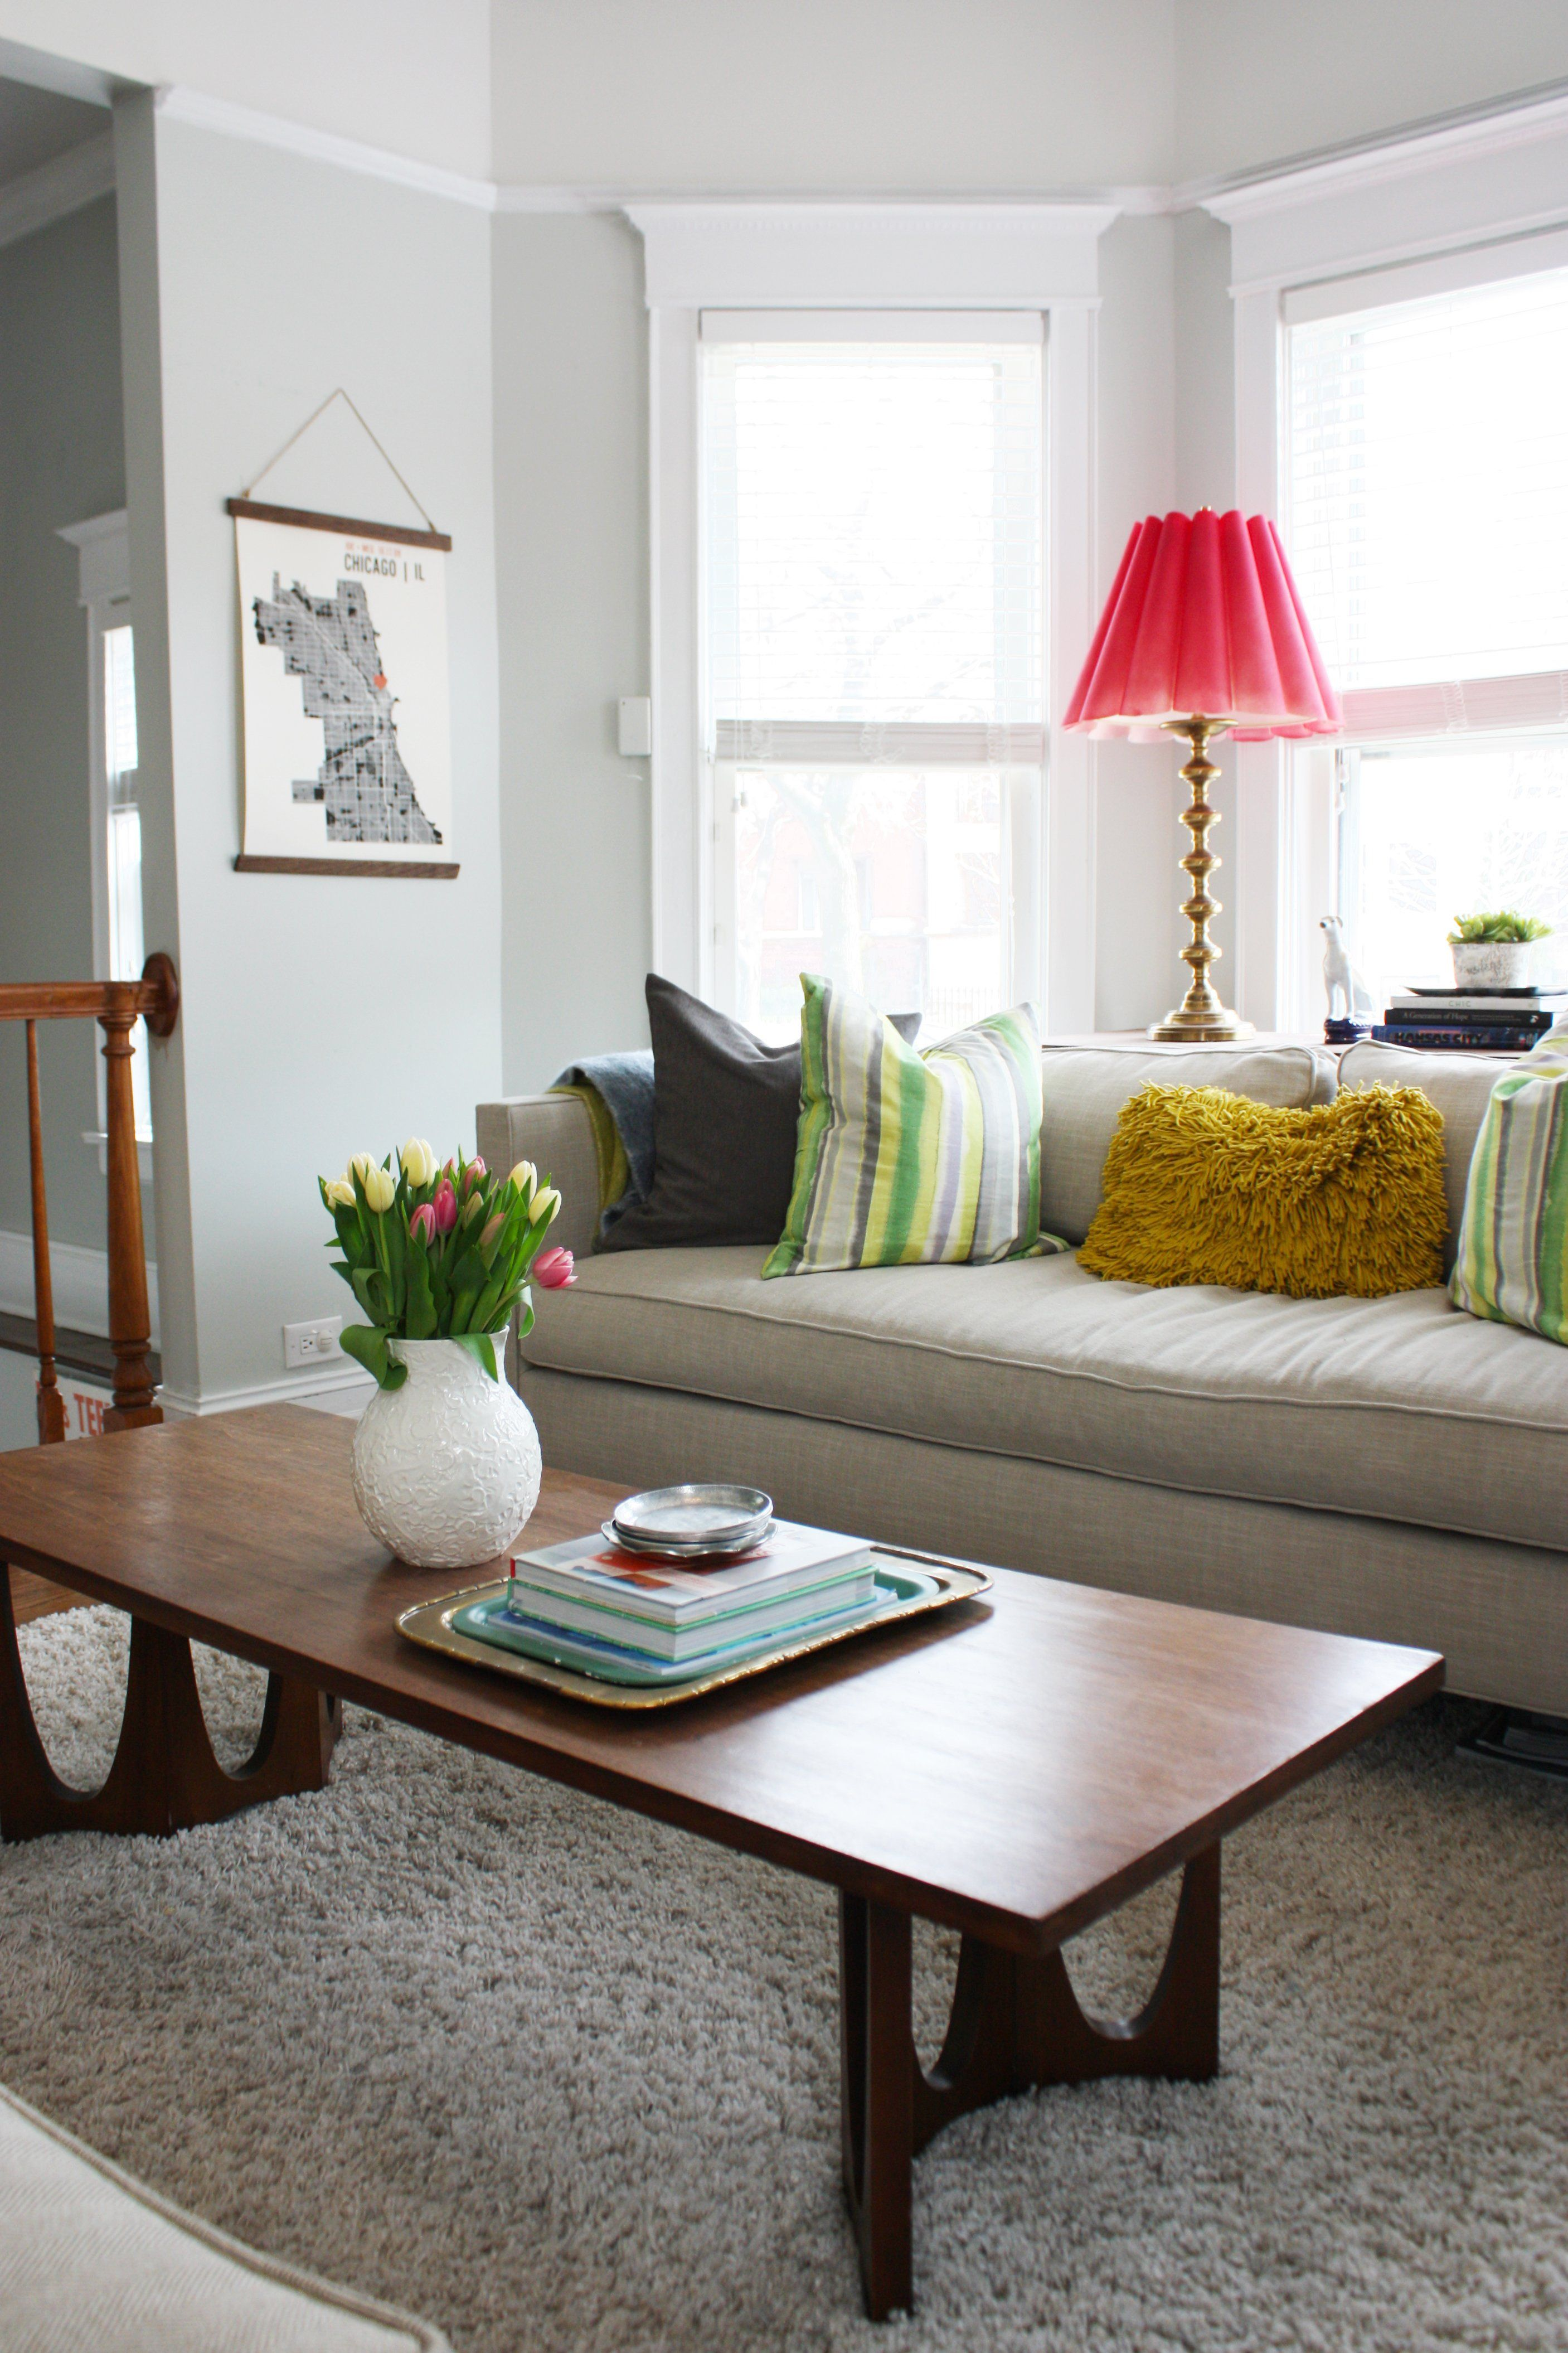 paint colors that match this apartment therapy photo sw 2927